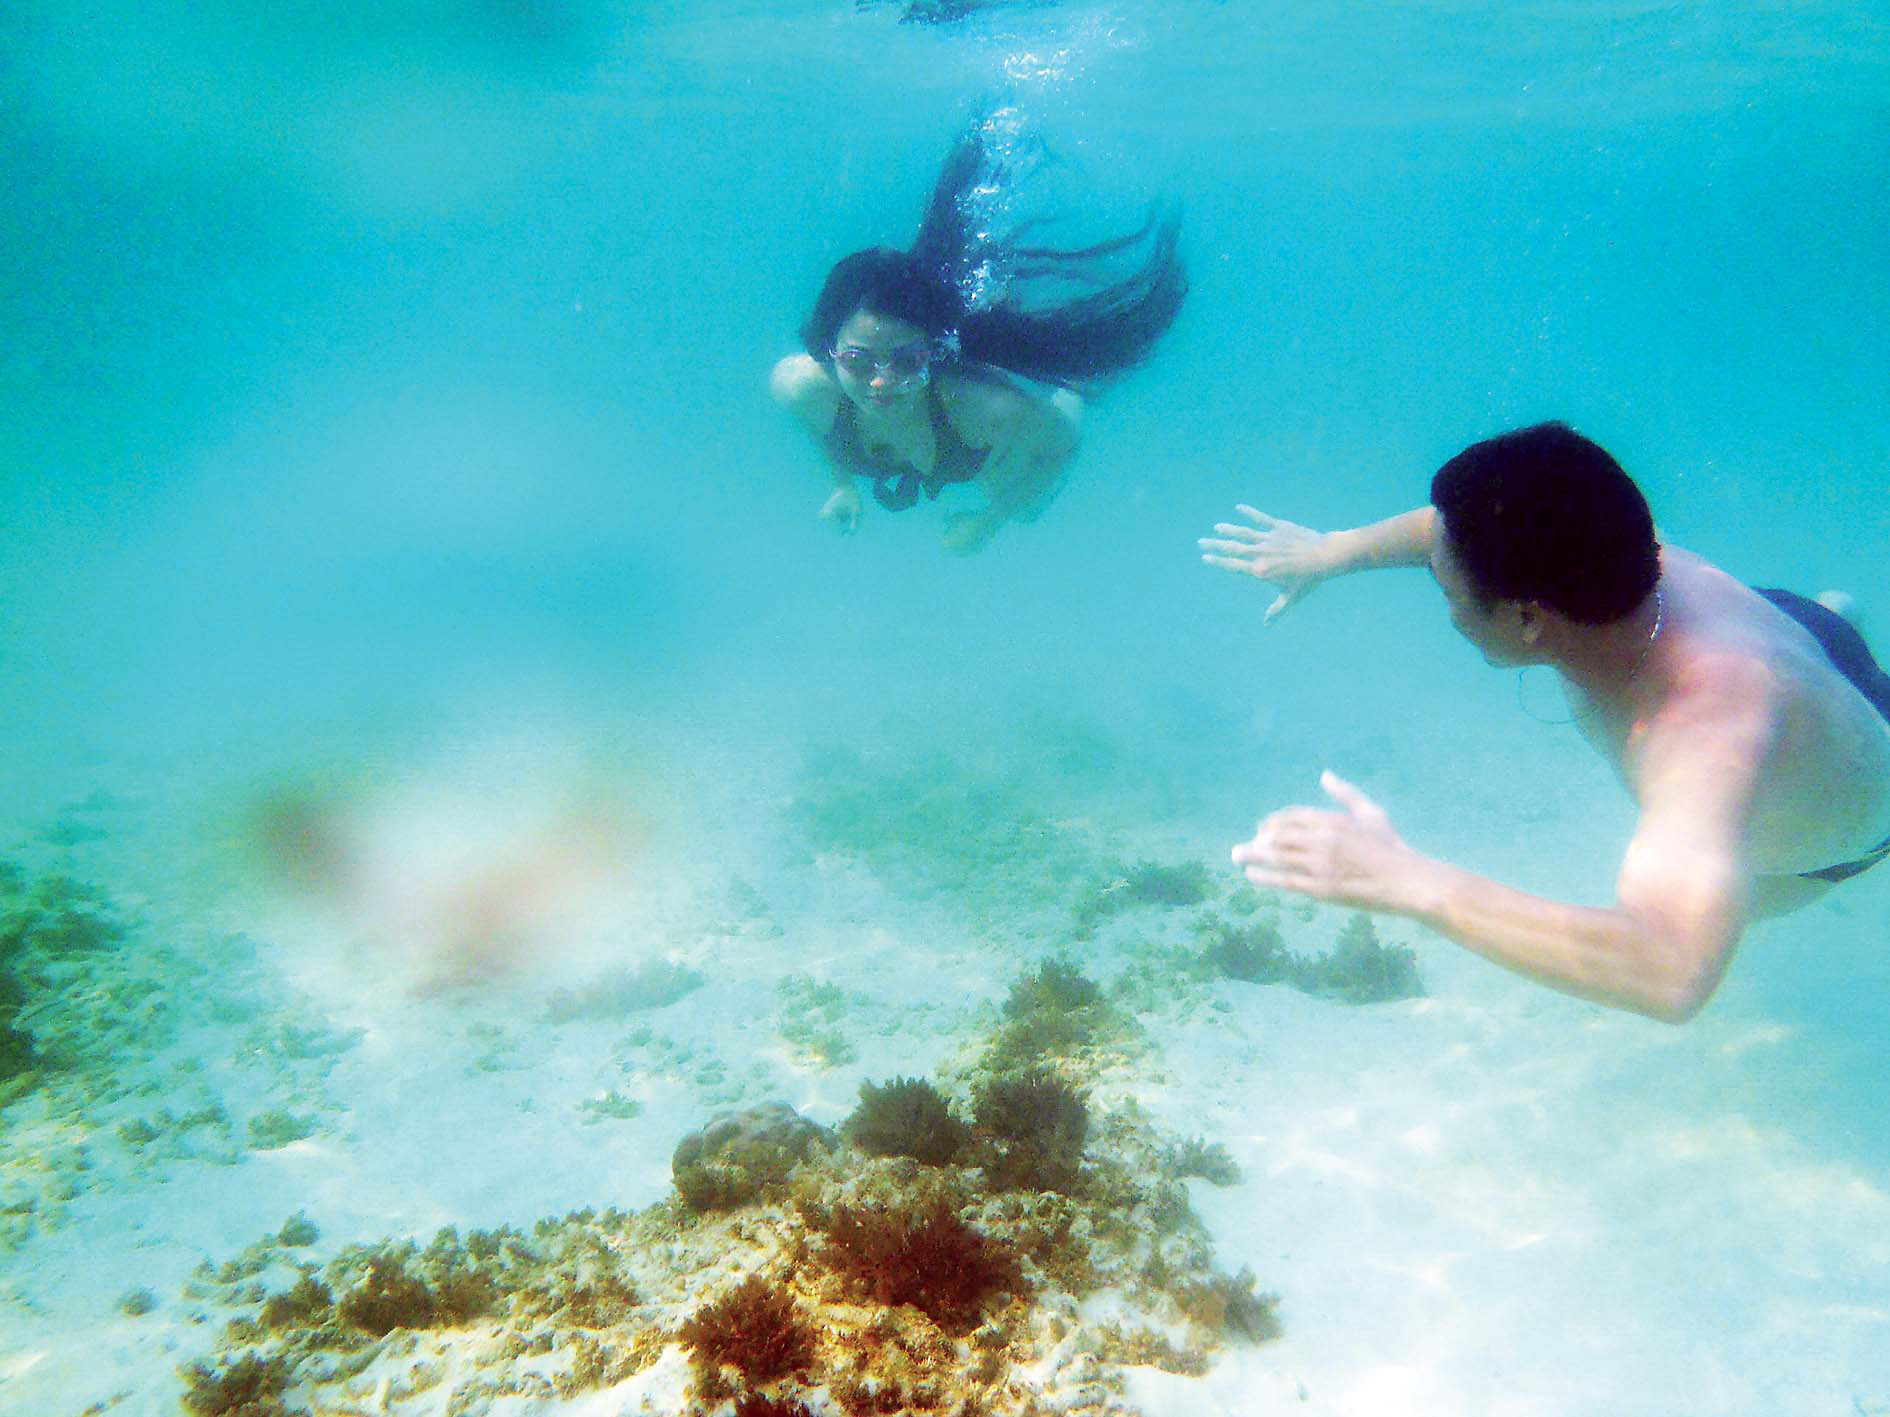 <em>Tourists enjoy coral reef diving at the Quyet Tien beach near the Tho Chau archipelago off Kien Giang Province, Vietnam.</em>